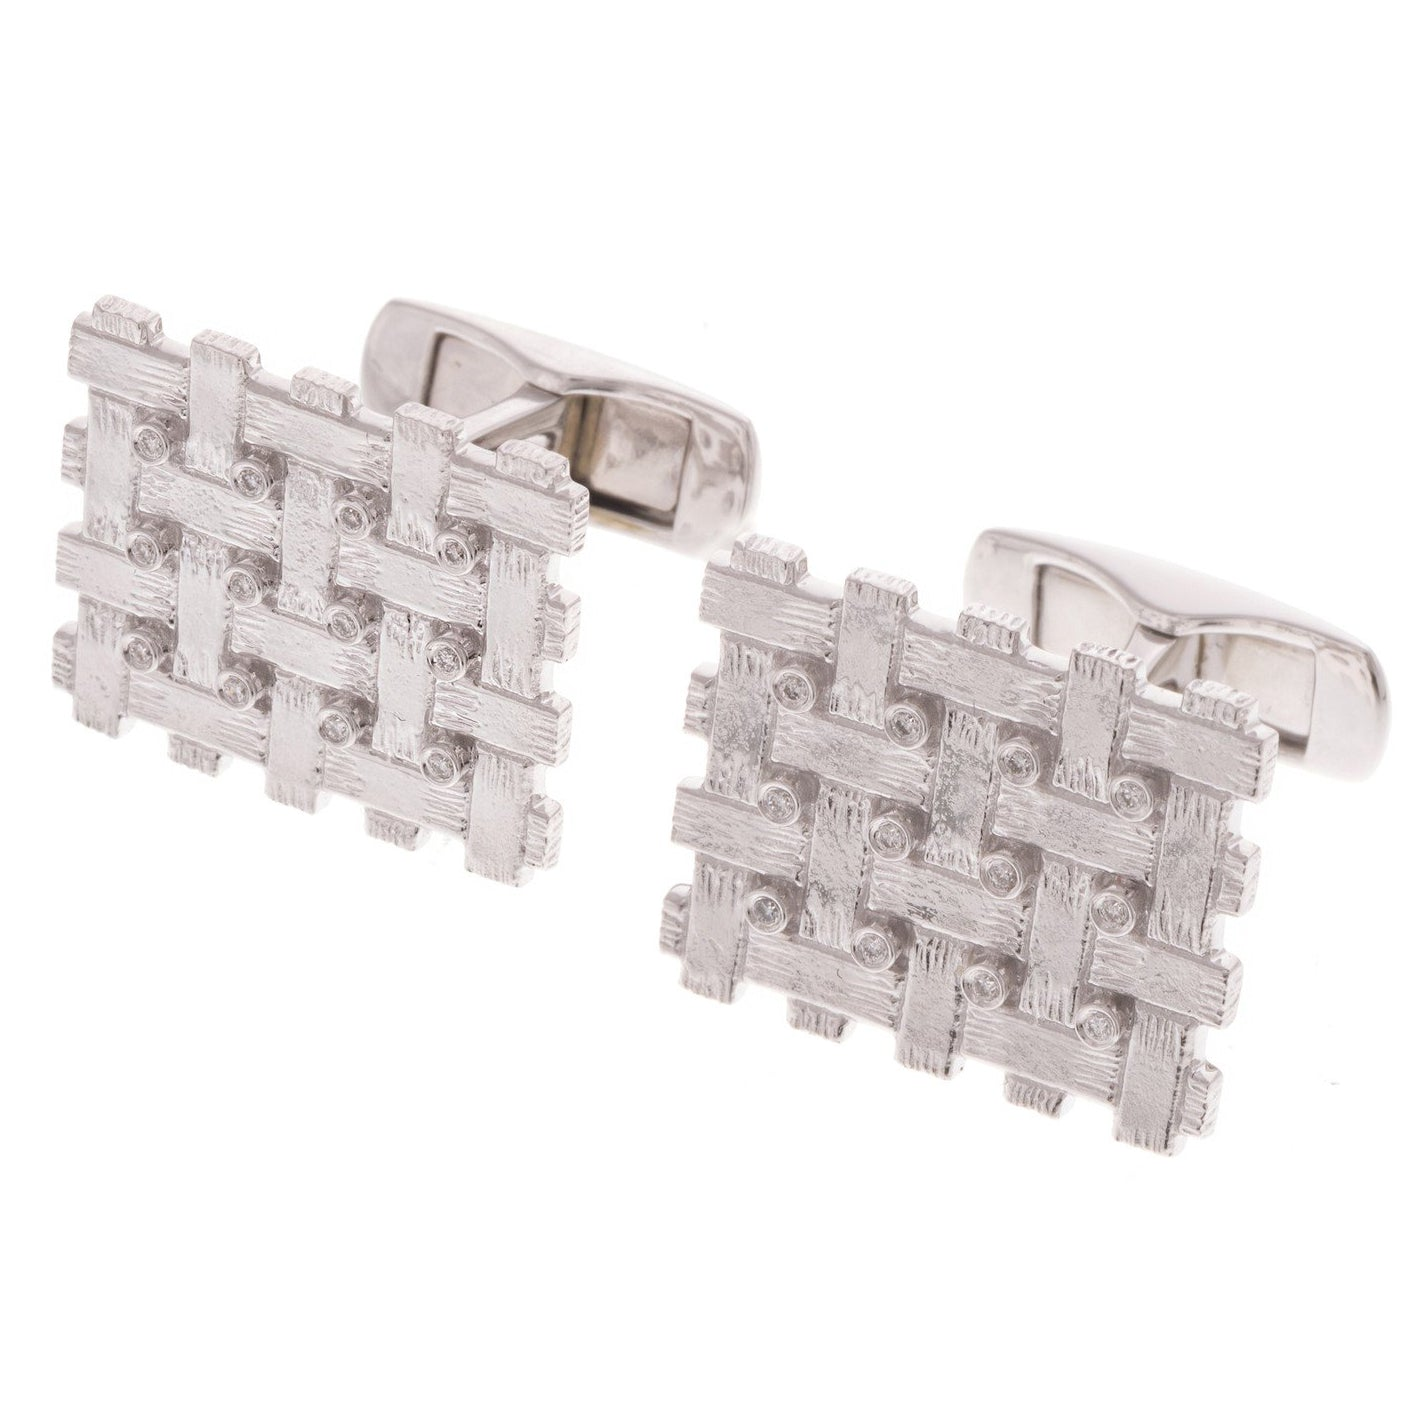 18ct White Gold Diamond Men's Cufflinks, Minar Jewellers - 2